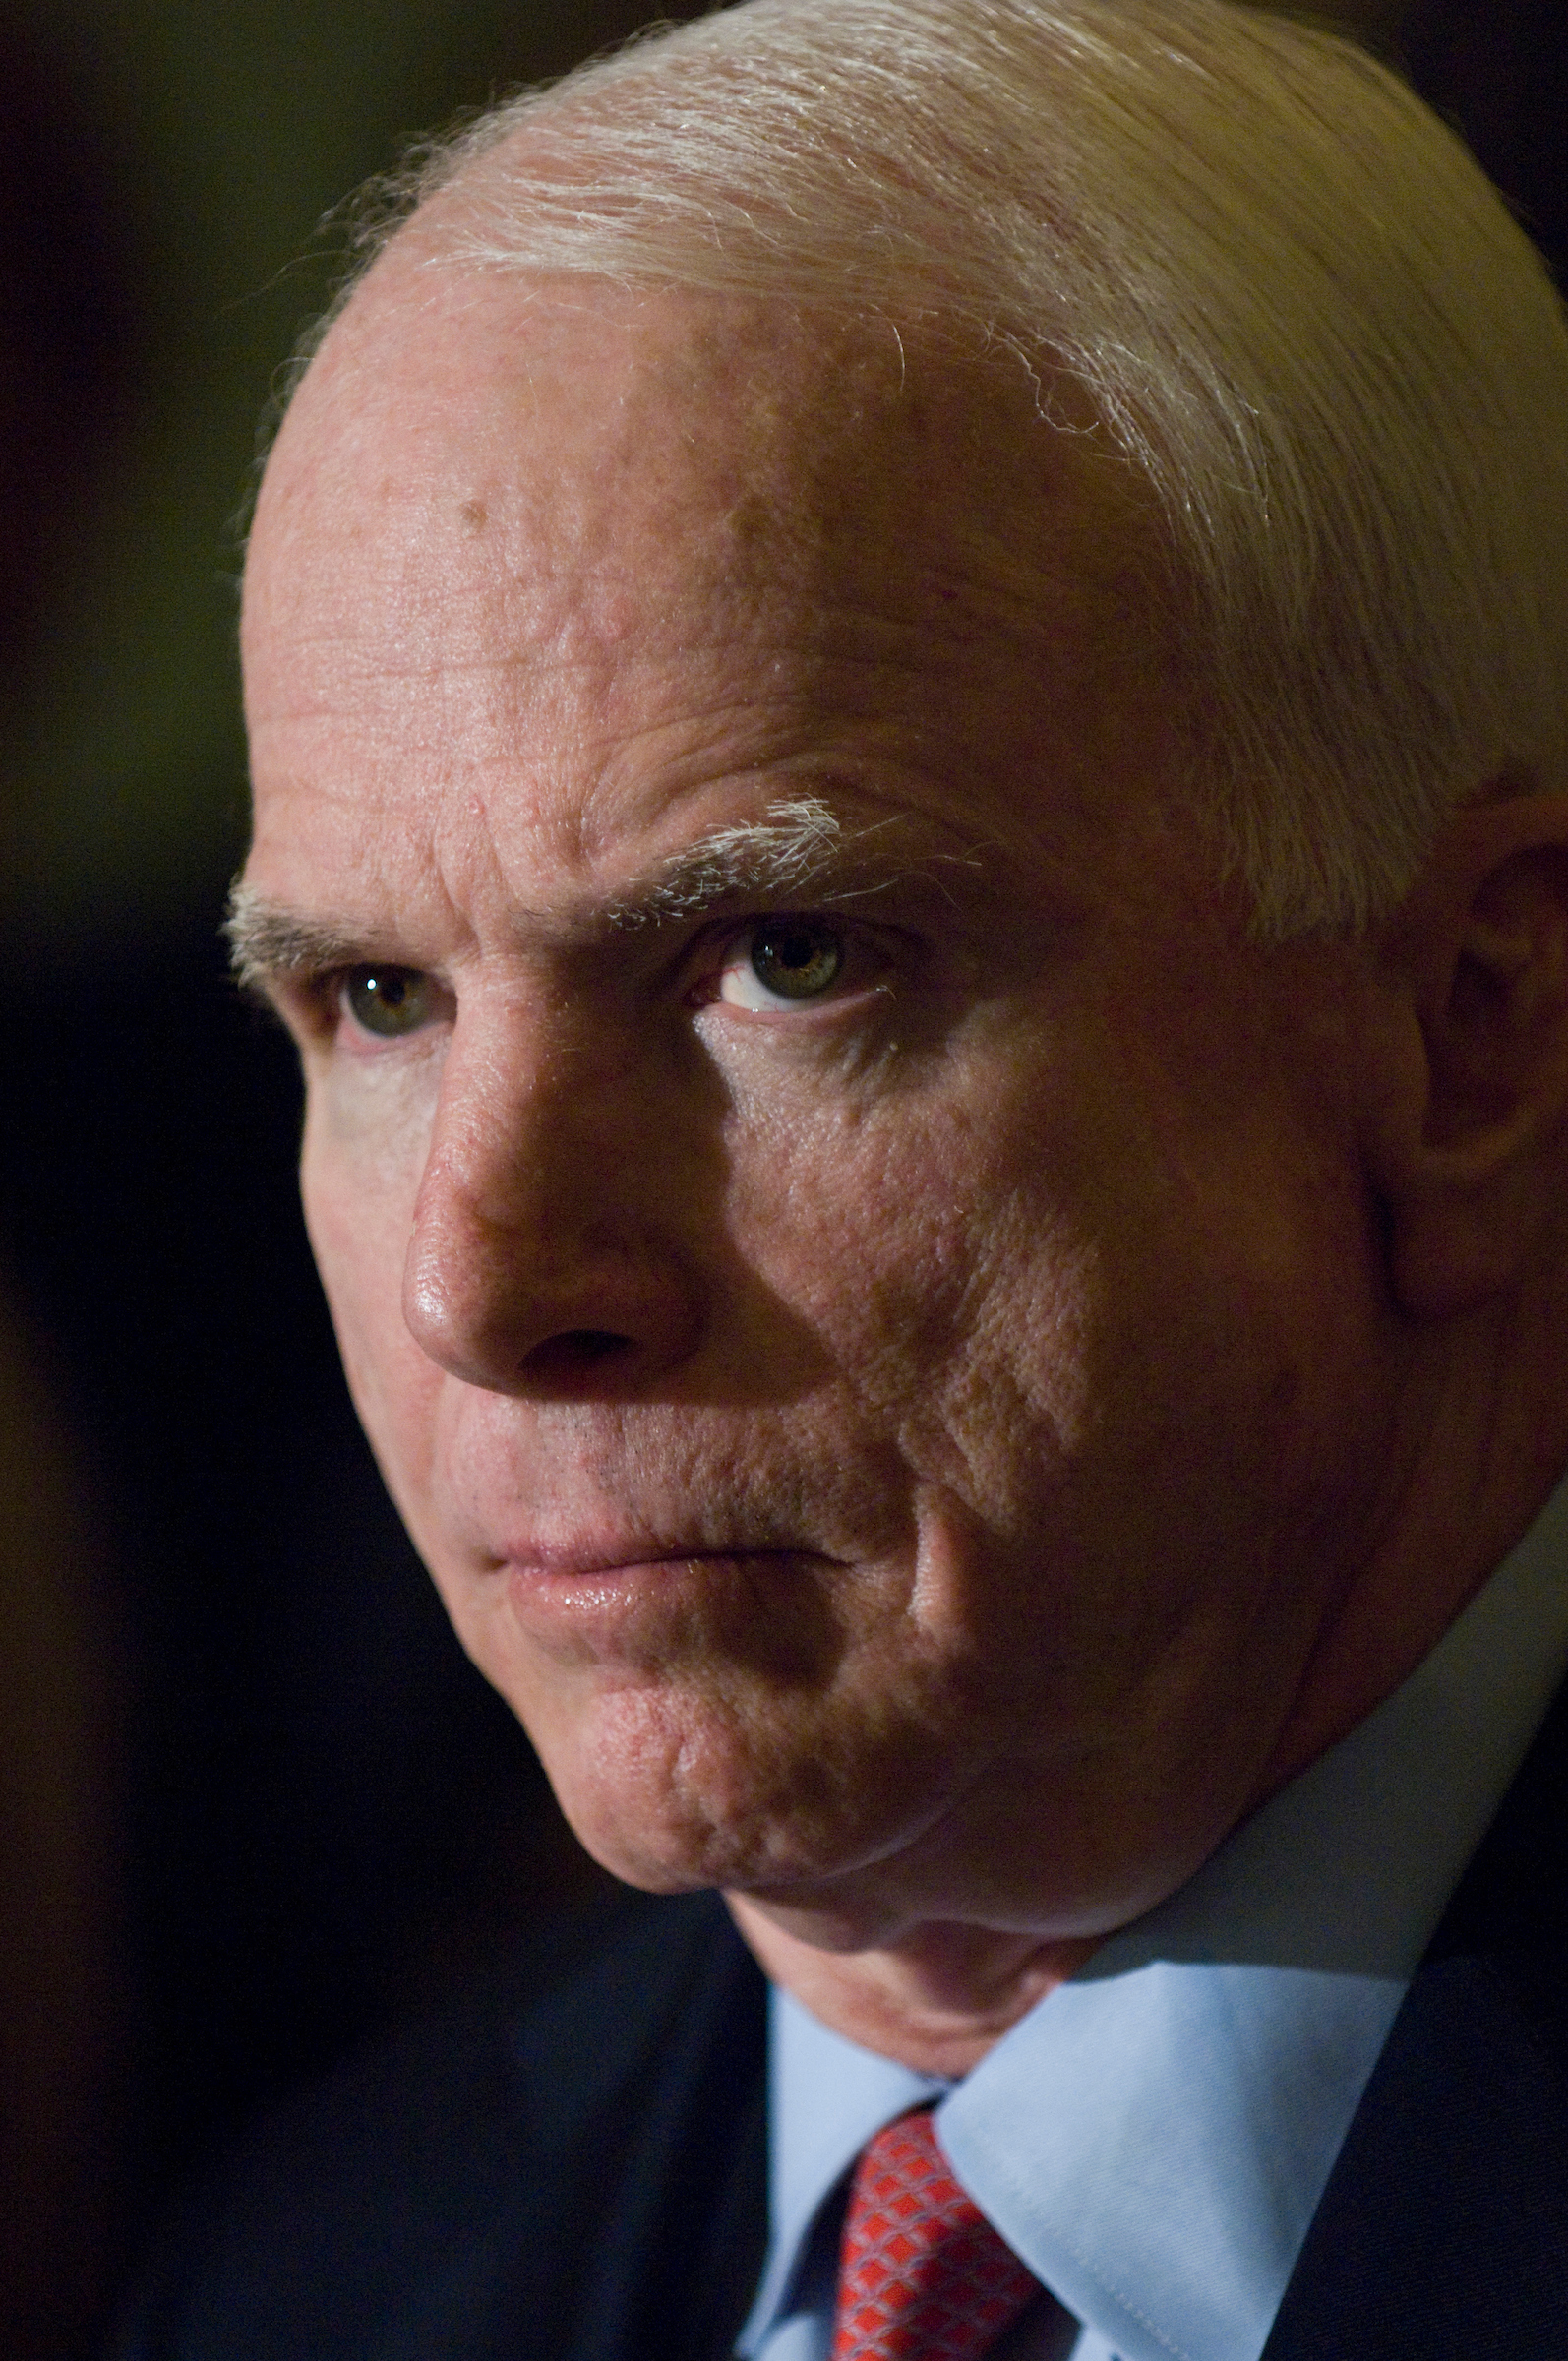 December 2009: Sen. John McCain, R-Ariz., during a news conference after the Senate Republican policy luncheon, as the Senate prepares to debate a bill overhauling health care, and as President Obama is expected to announce Tuesday evening that he is sending some 30,000 more U.S. troops to Afghanistan, bringing the total to 100,000. (Scott J. Ferrell/CQ Roll Call file photo)